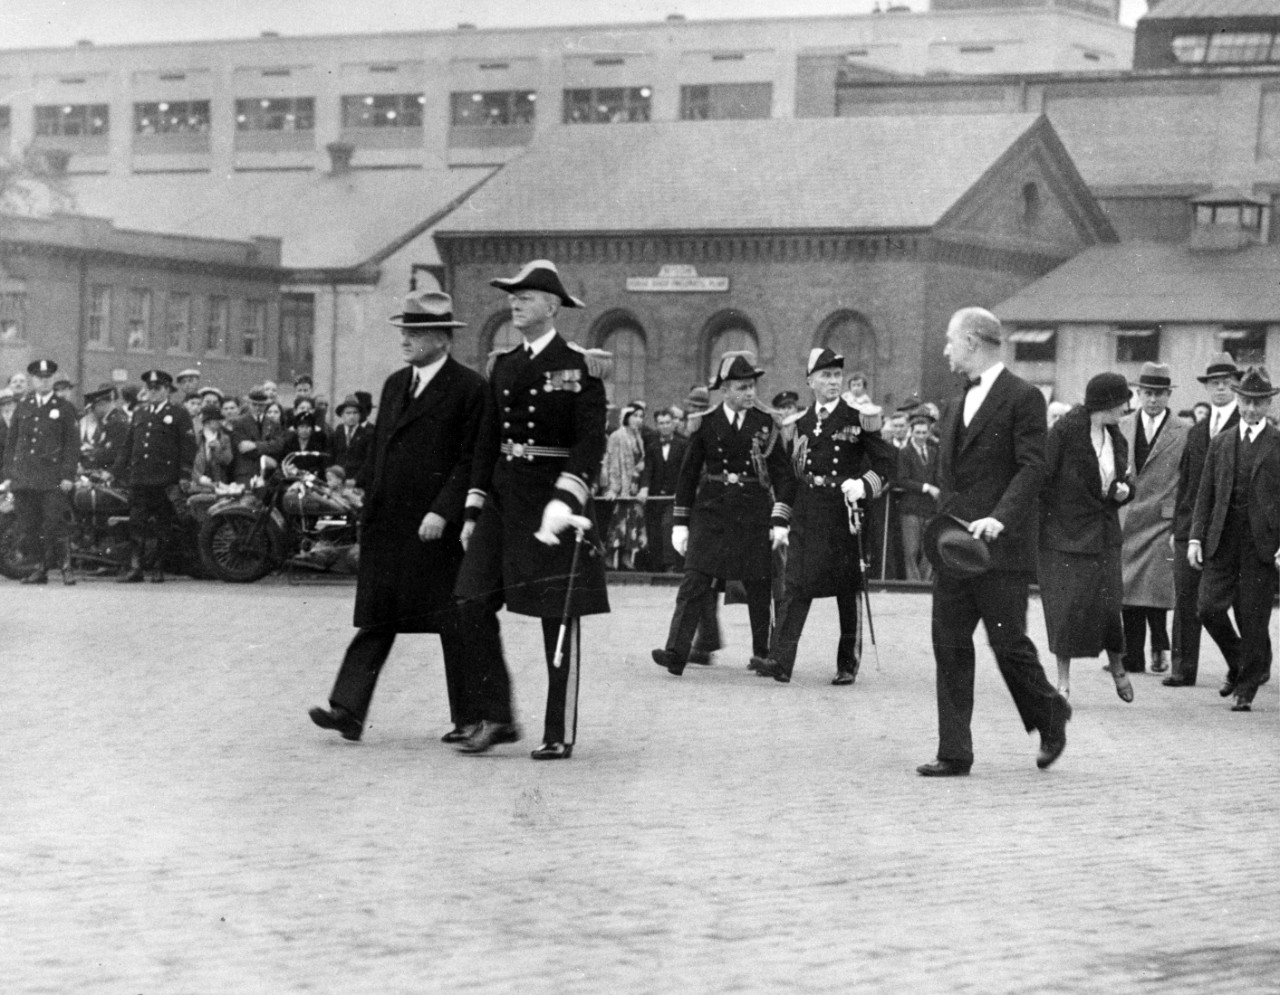 President Herbert Hoover on his way to the presidential barge to inspect USS Constitution at the Washington Navy Yard.